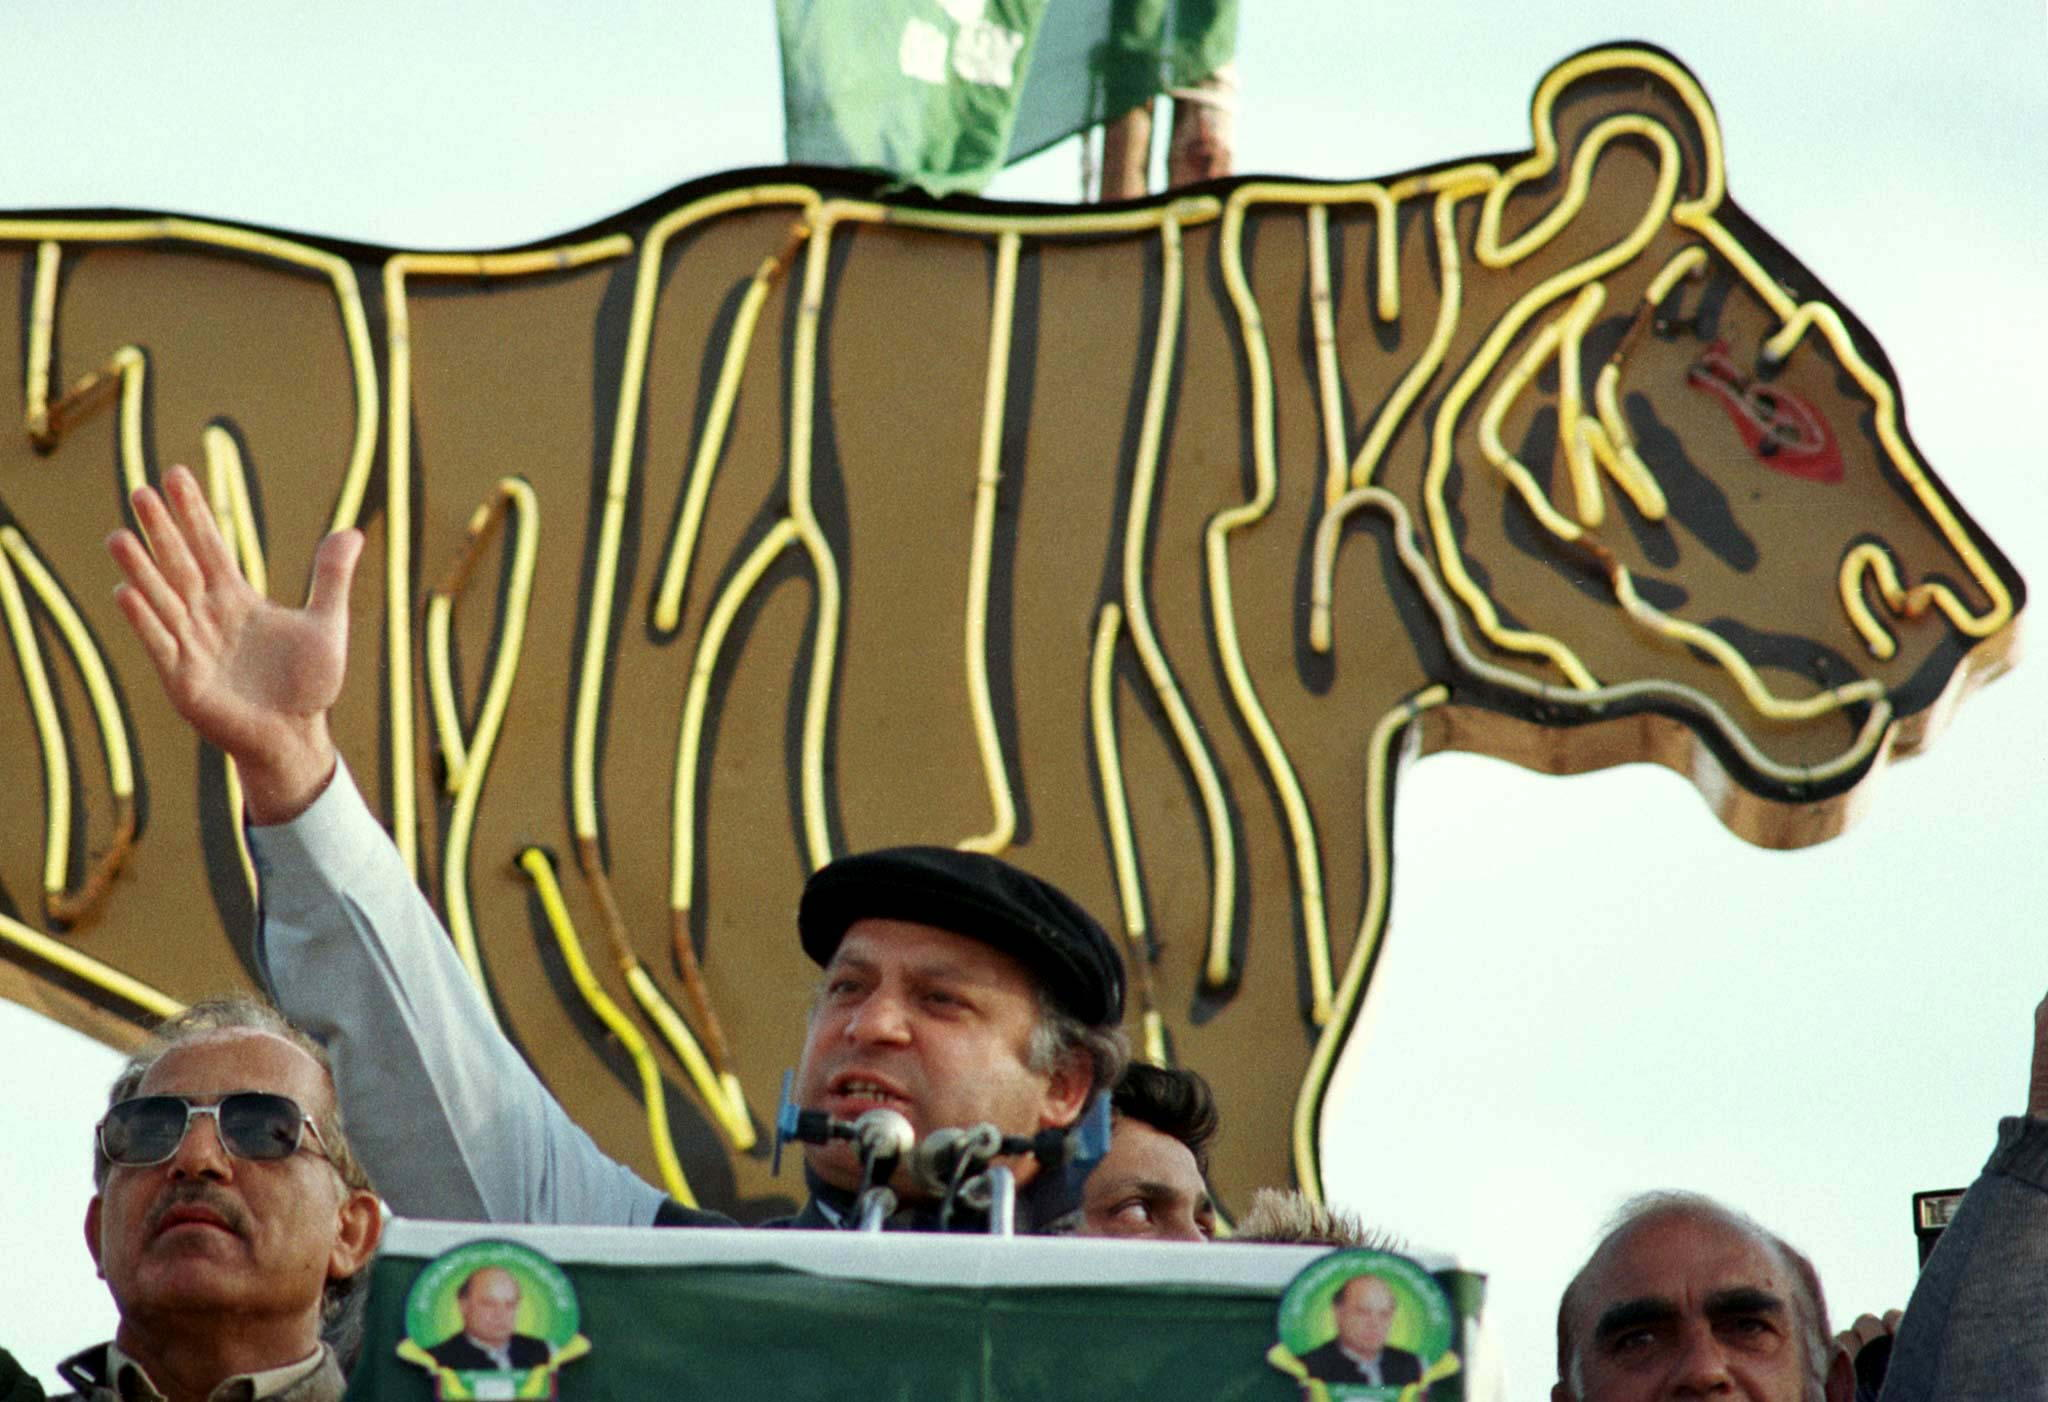 NAWAZ SHARIF CAMPAIGNS FOR PAKISTANI GENERAL ELECTIONS